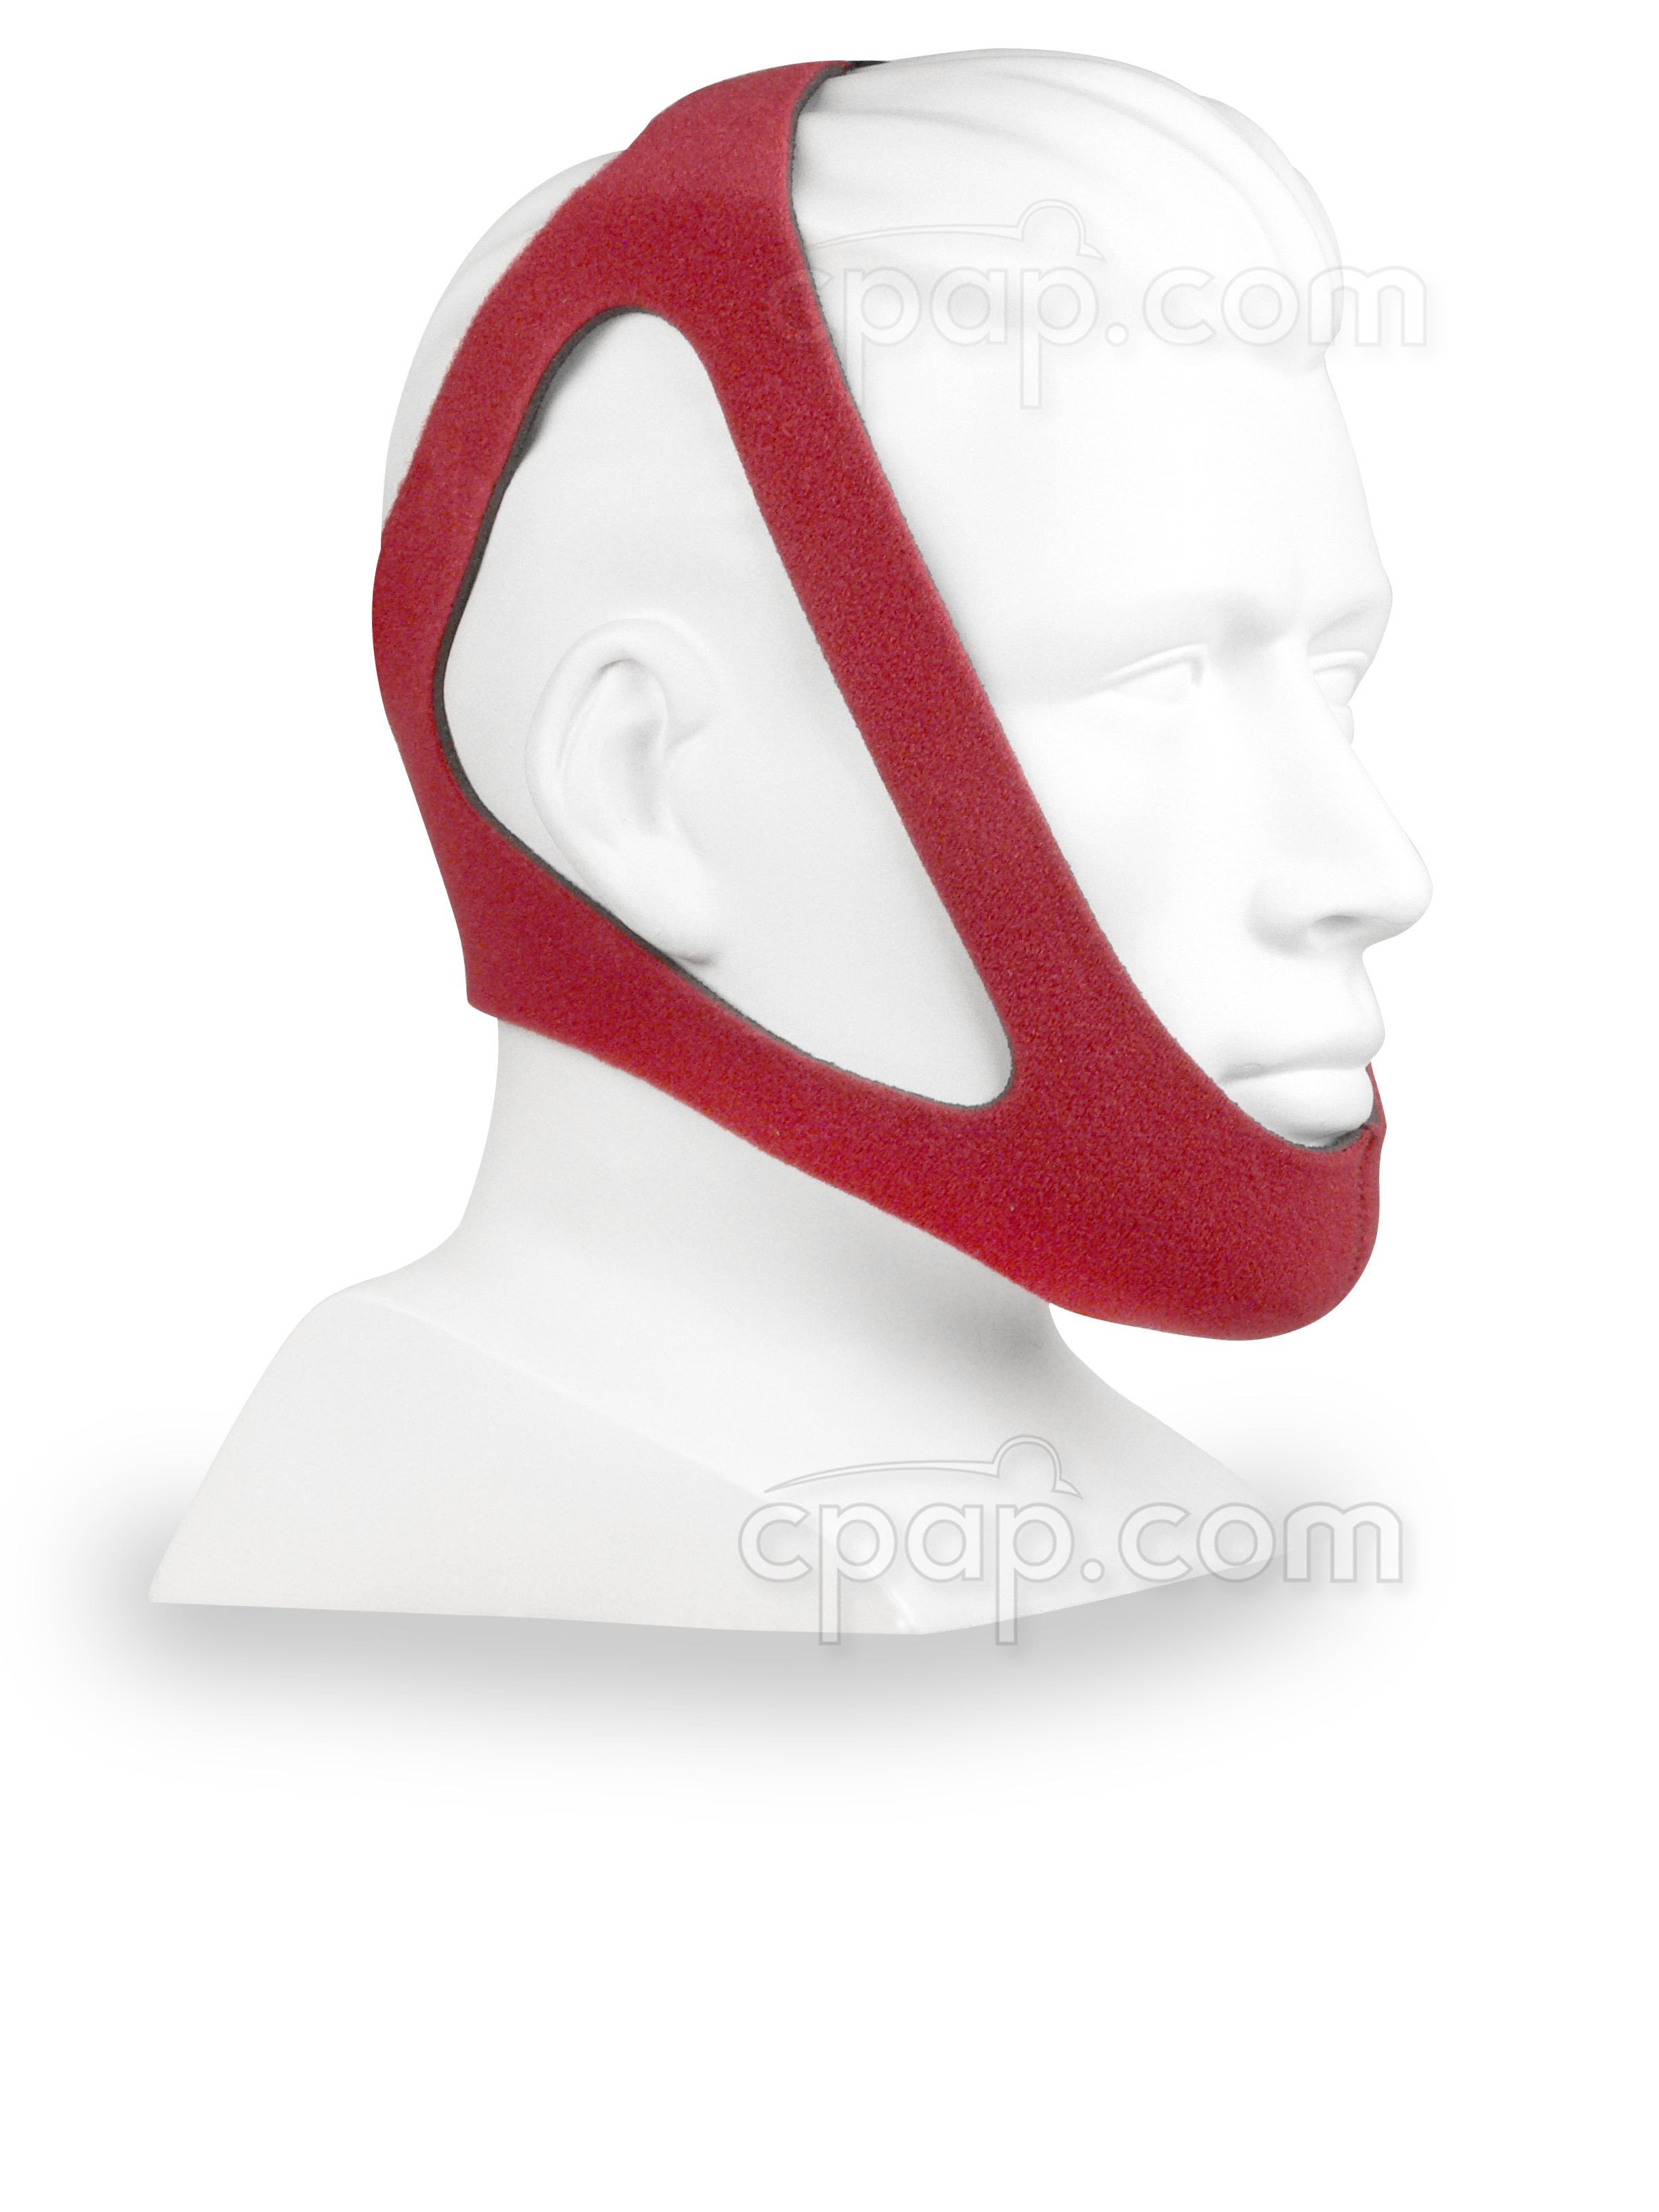 Ruby-Style Adjustable Chinstrap - Angled Front - Shown on Mannequin (Not Included)